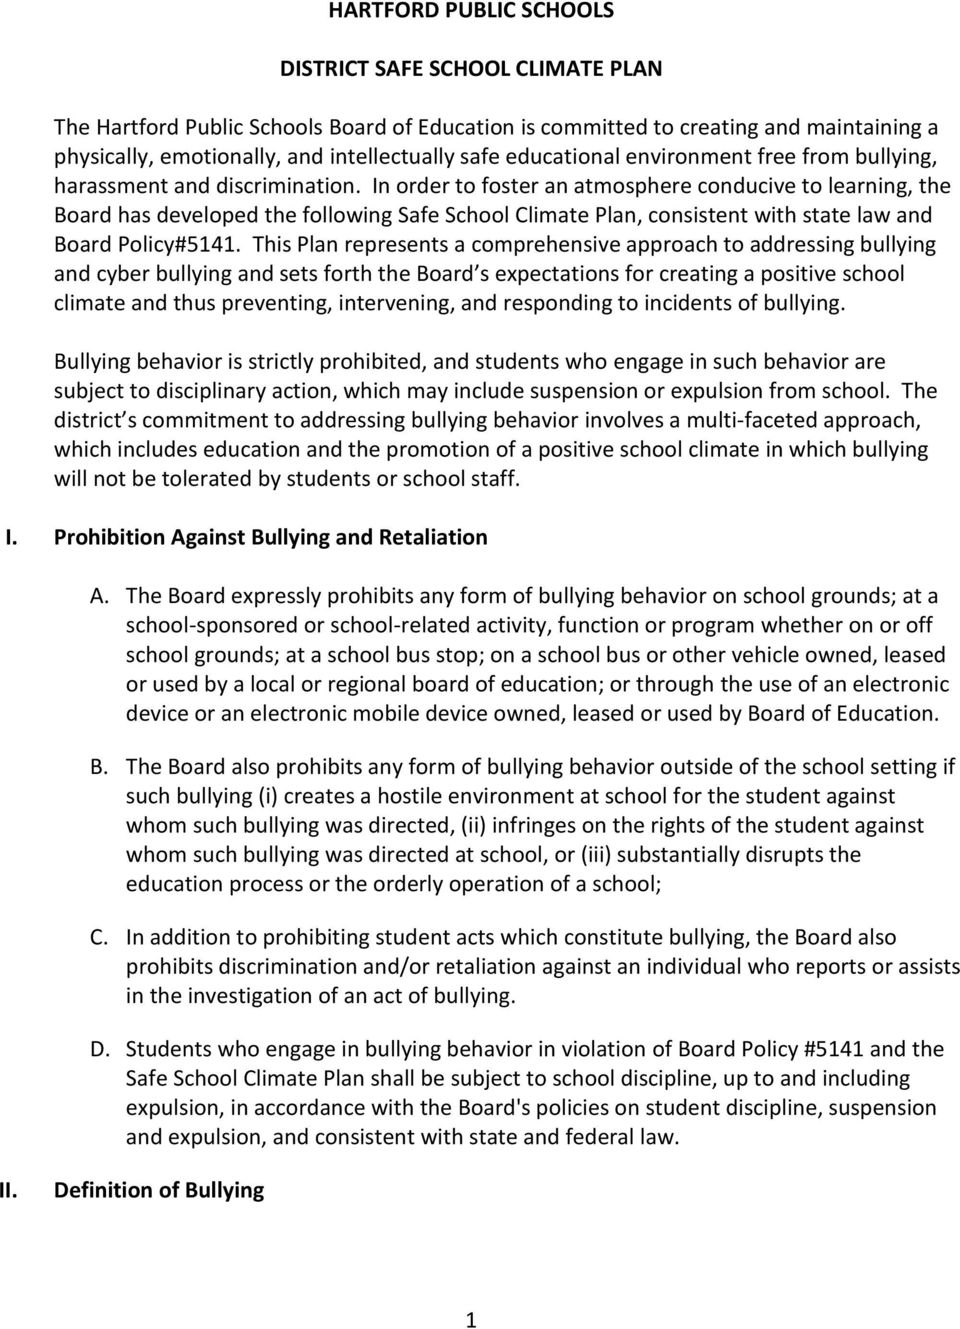 In order to foster an atmosphere conducive to learning, the Board has developed the following Safe School Climate Plan, consistent with state law and Board Policy#5141.